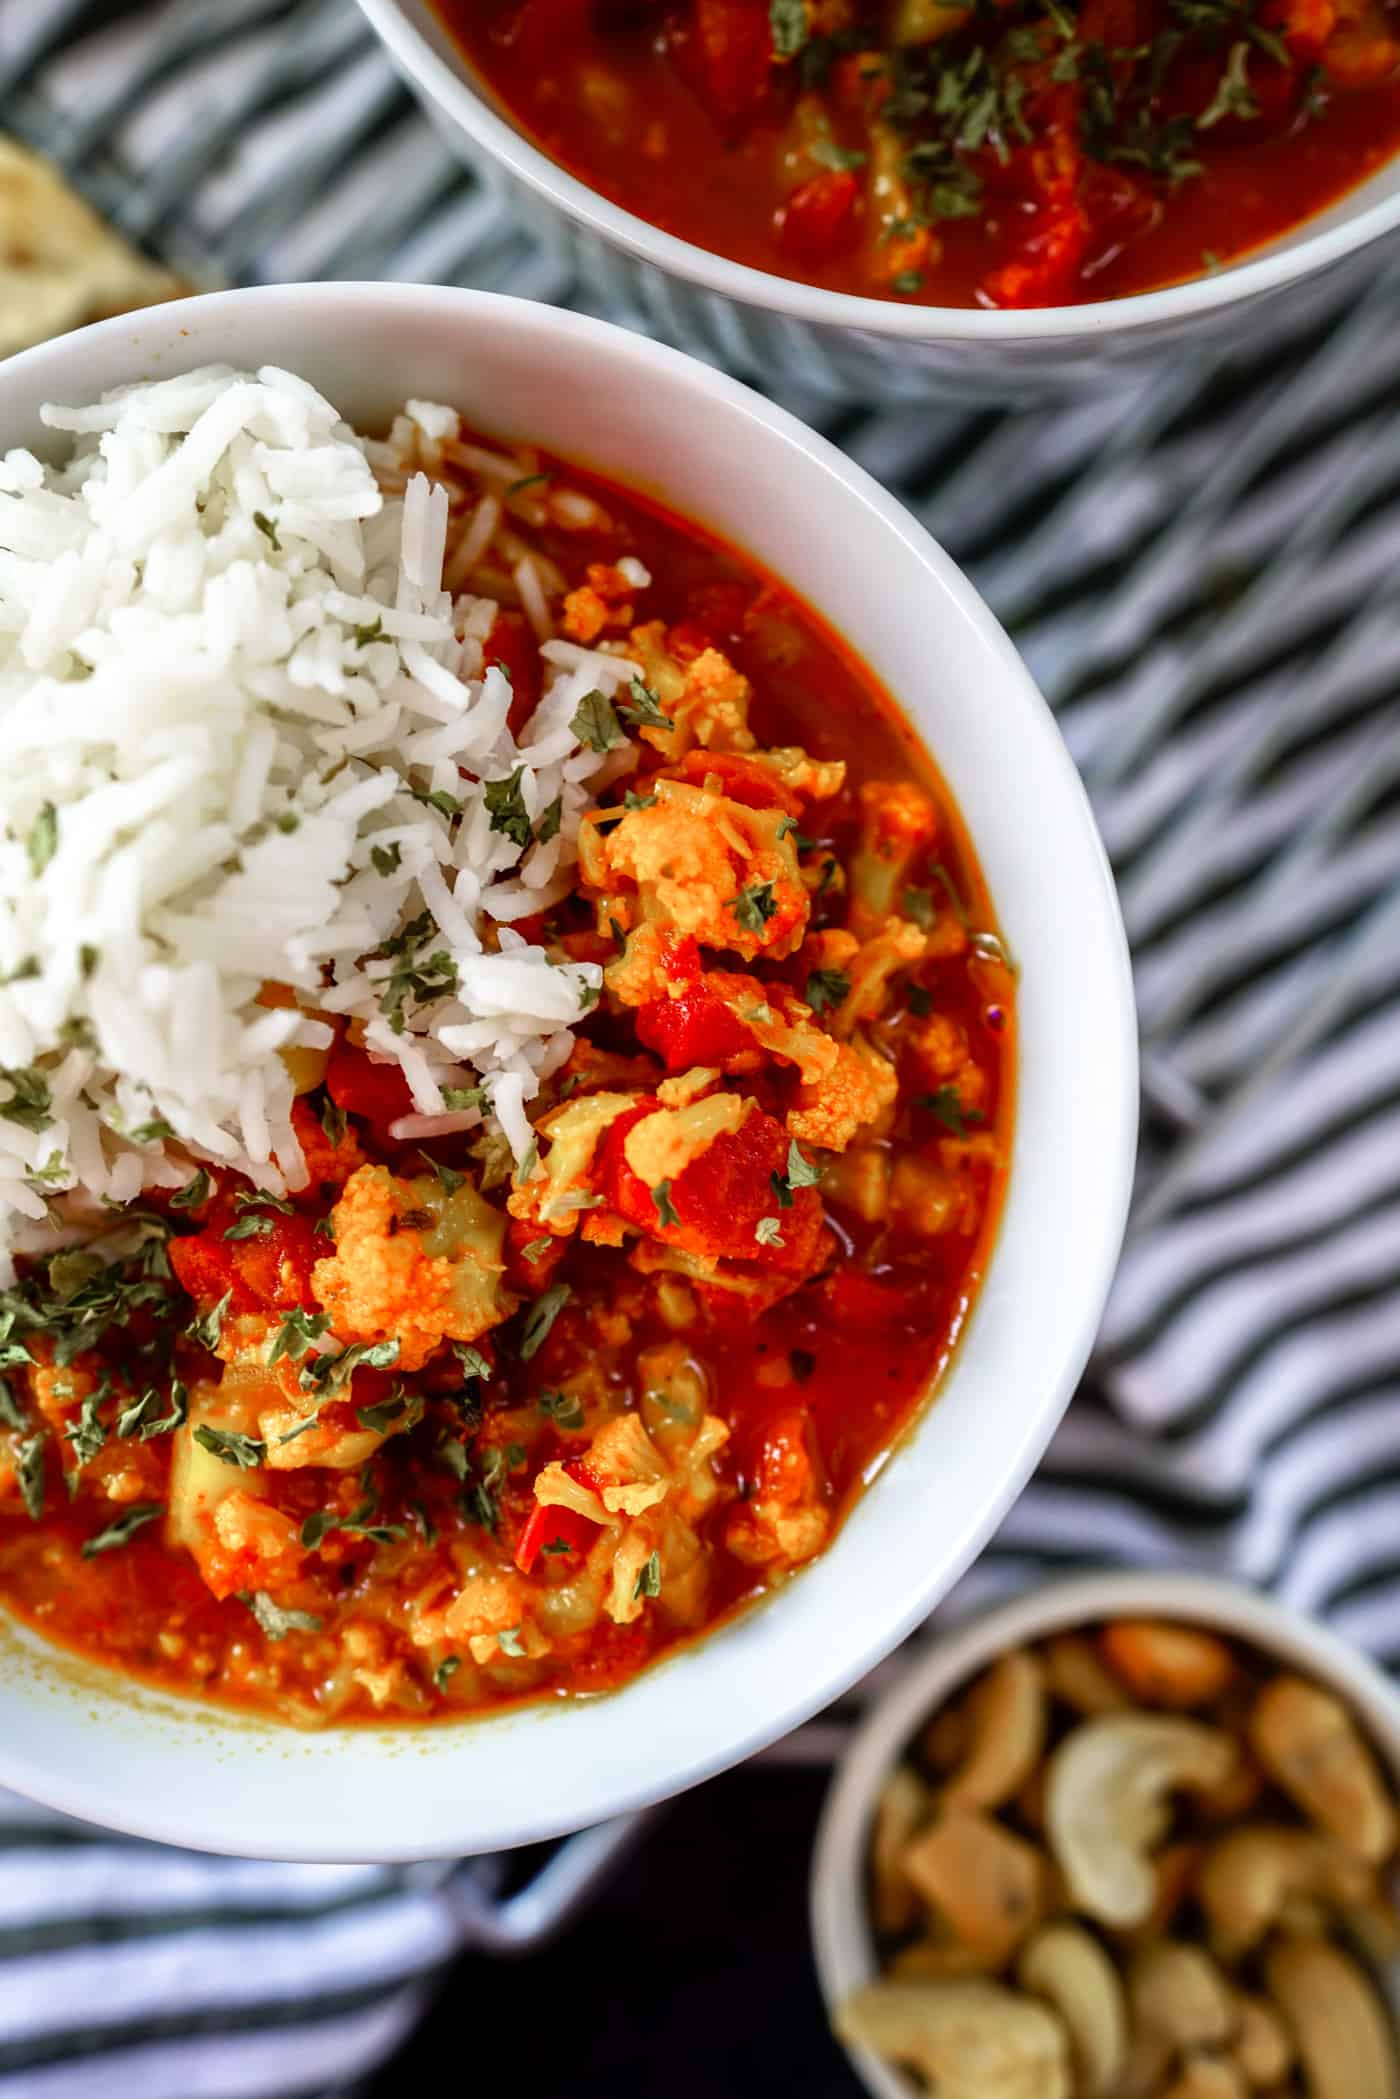 A Lily Love Affair shares a cauliflower tikka masala recipe made in the Instant Pot. Served over basmati rice